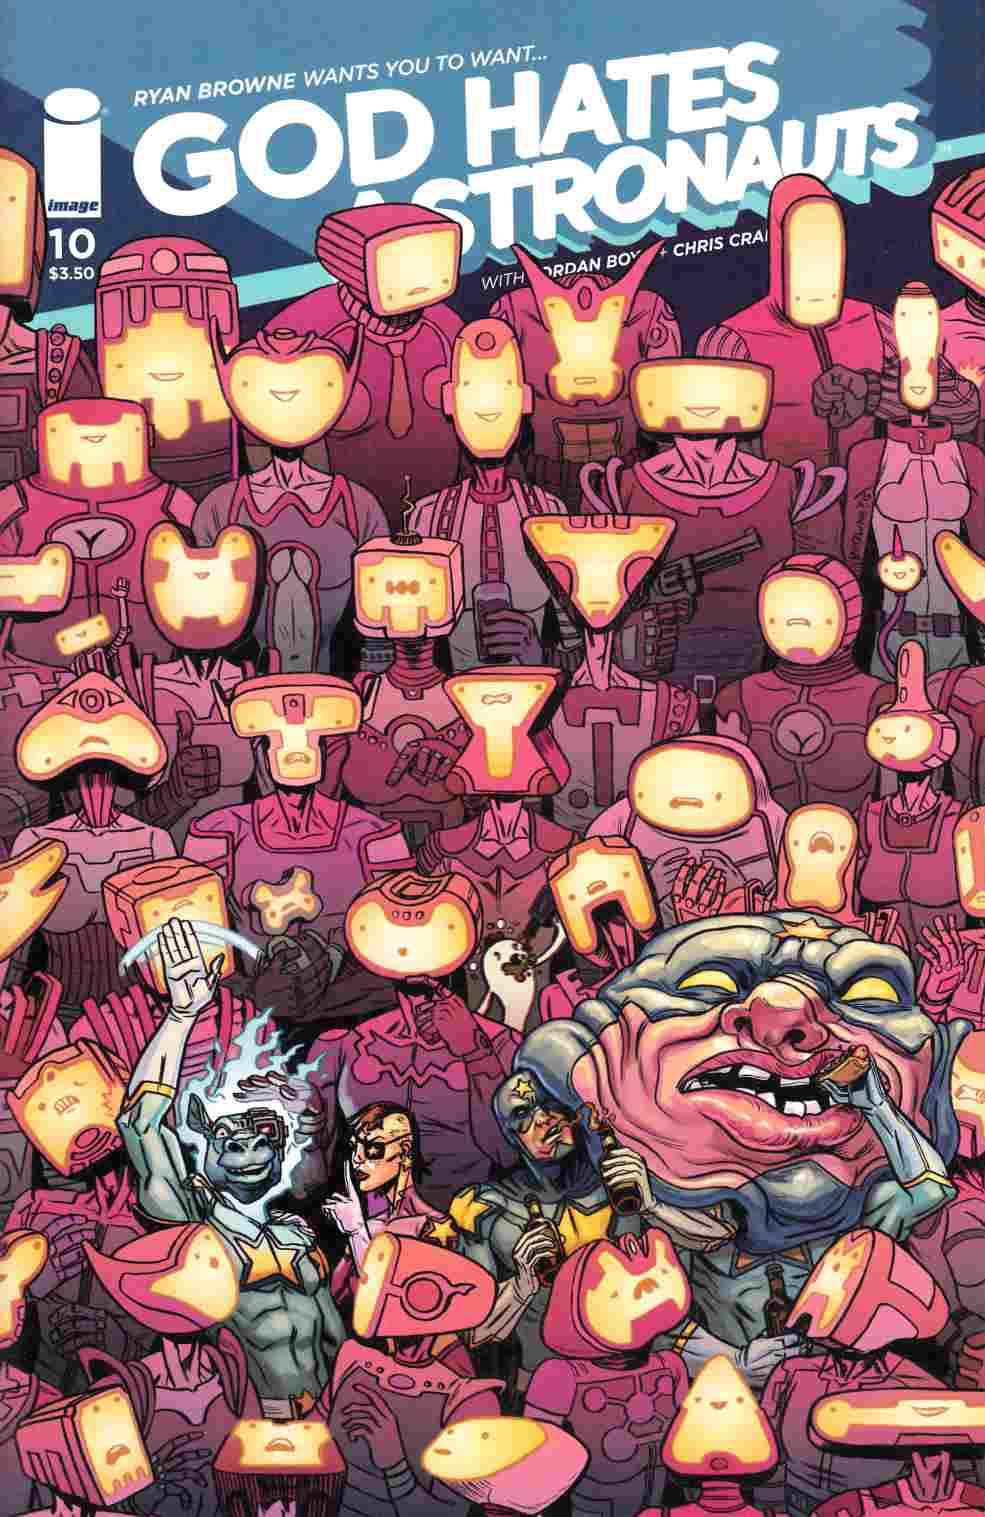 God Hates Astronauts #10 Cover A- Browne [Image Comic] THUMBNAIL